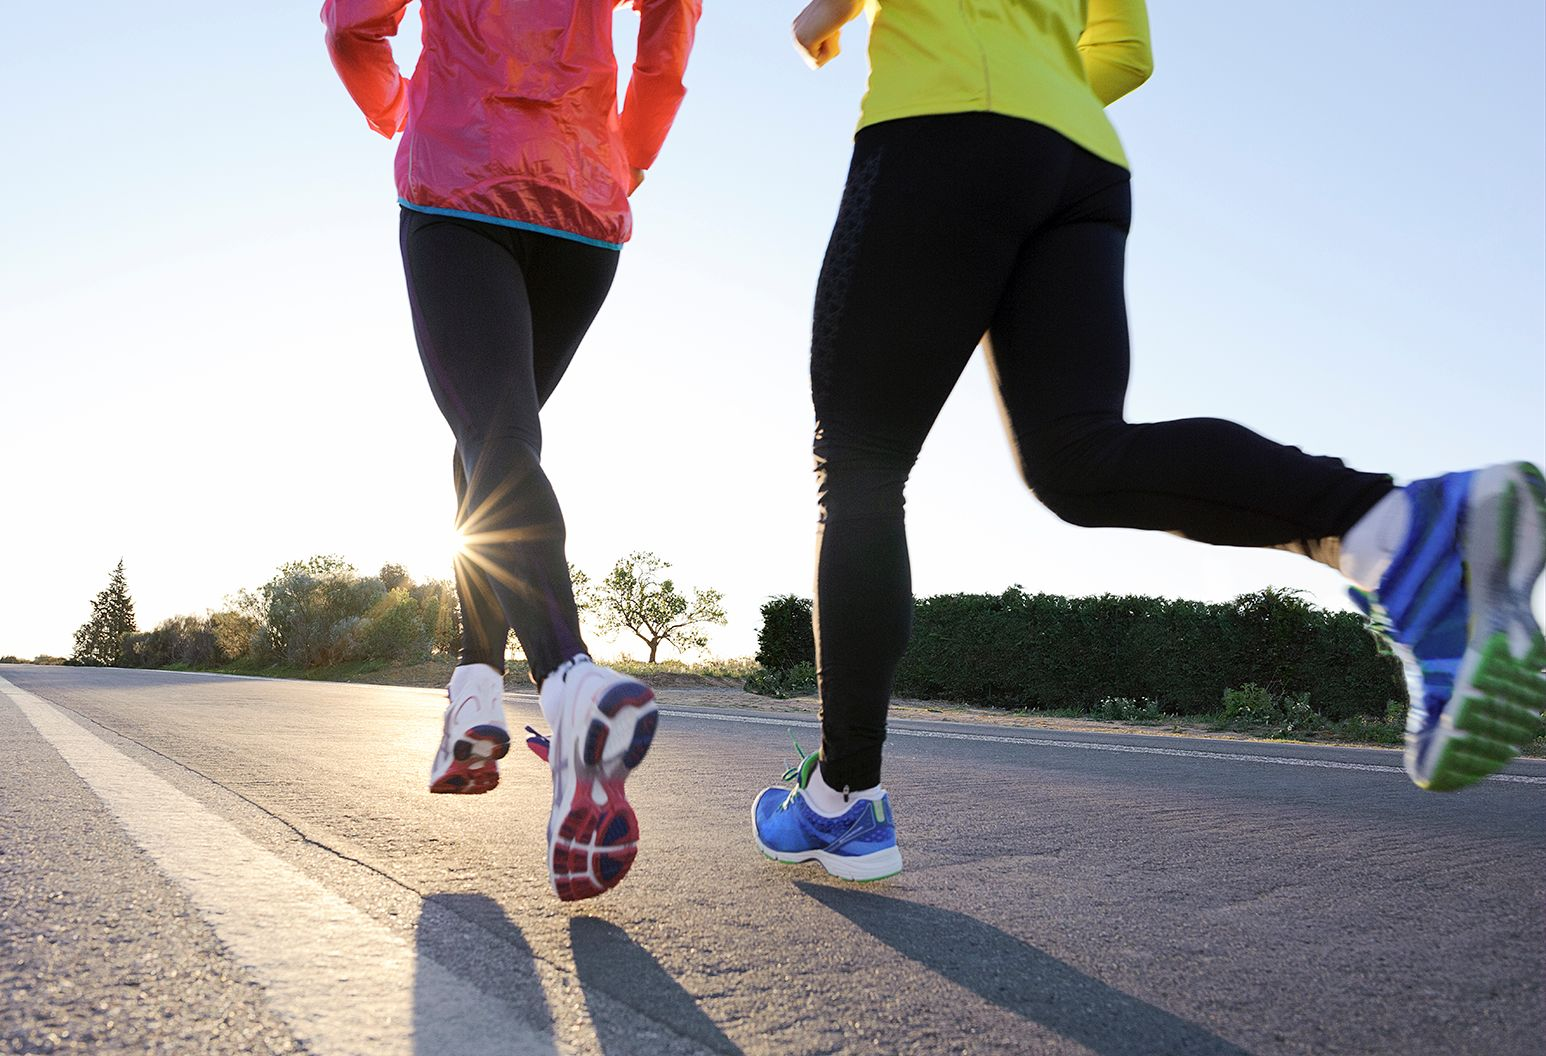 Tips for preventing running injuries from an orthopedic surgeon ...